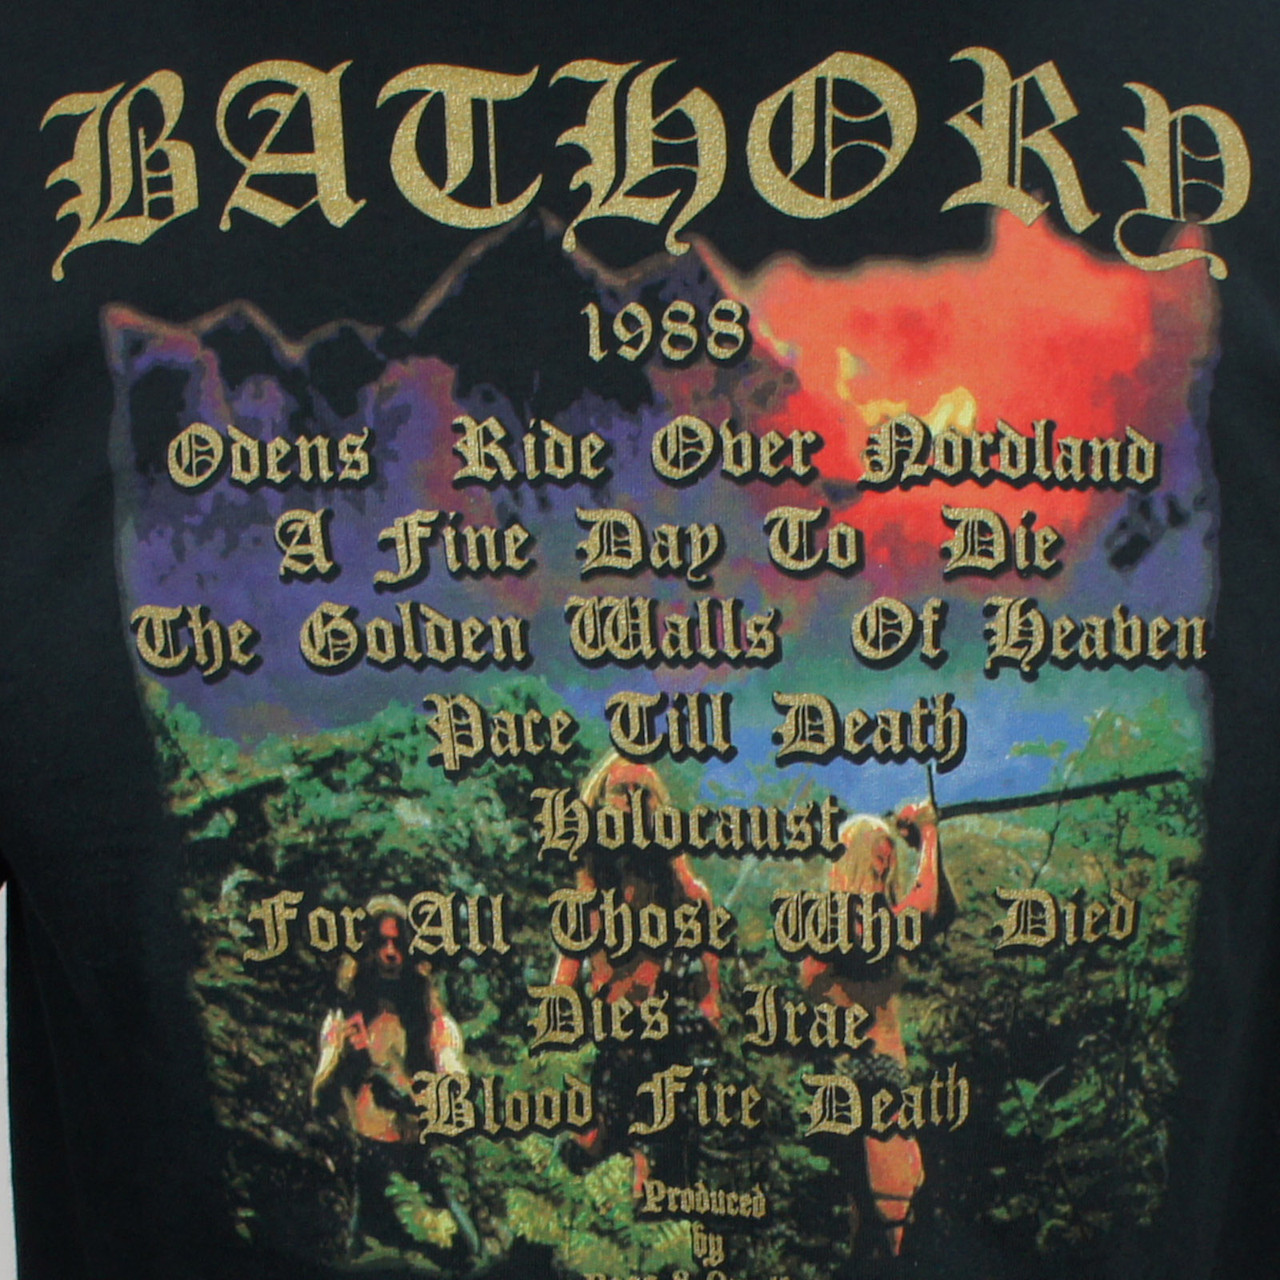 http://d3d71ba2asa5oz.cloudfront.net/12013655/images/10054252_2%20bathory%20blood%20fire%20death-222.jpg